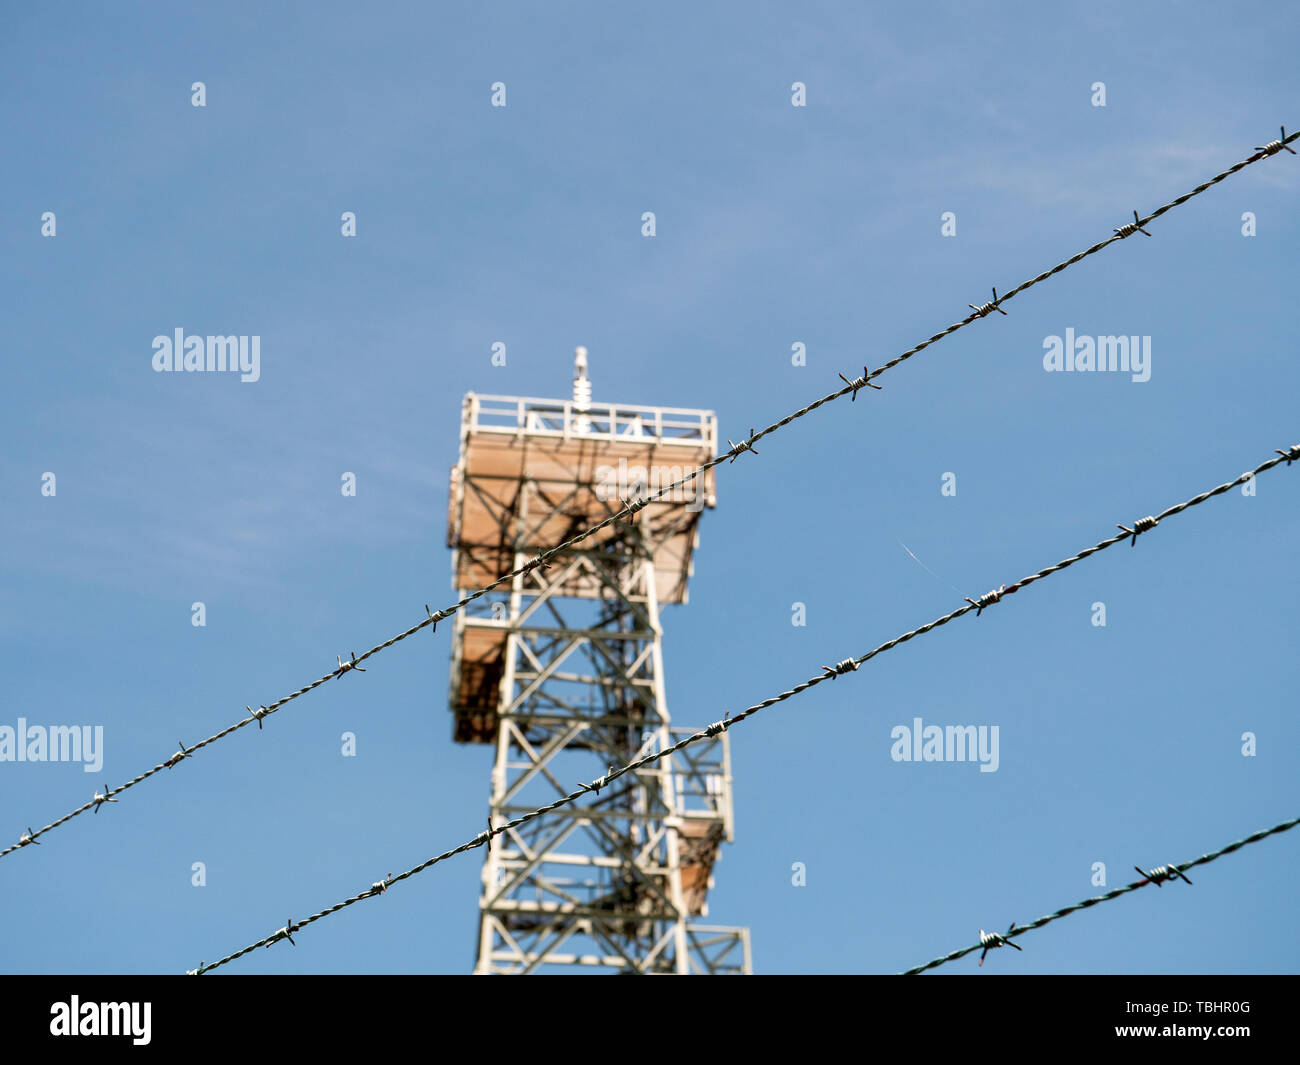 Security fence barber wire in front on surveillance mast clear blue sky Stock Photo